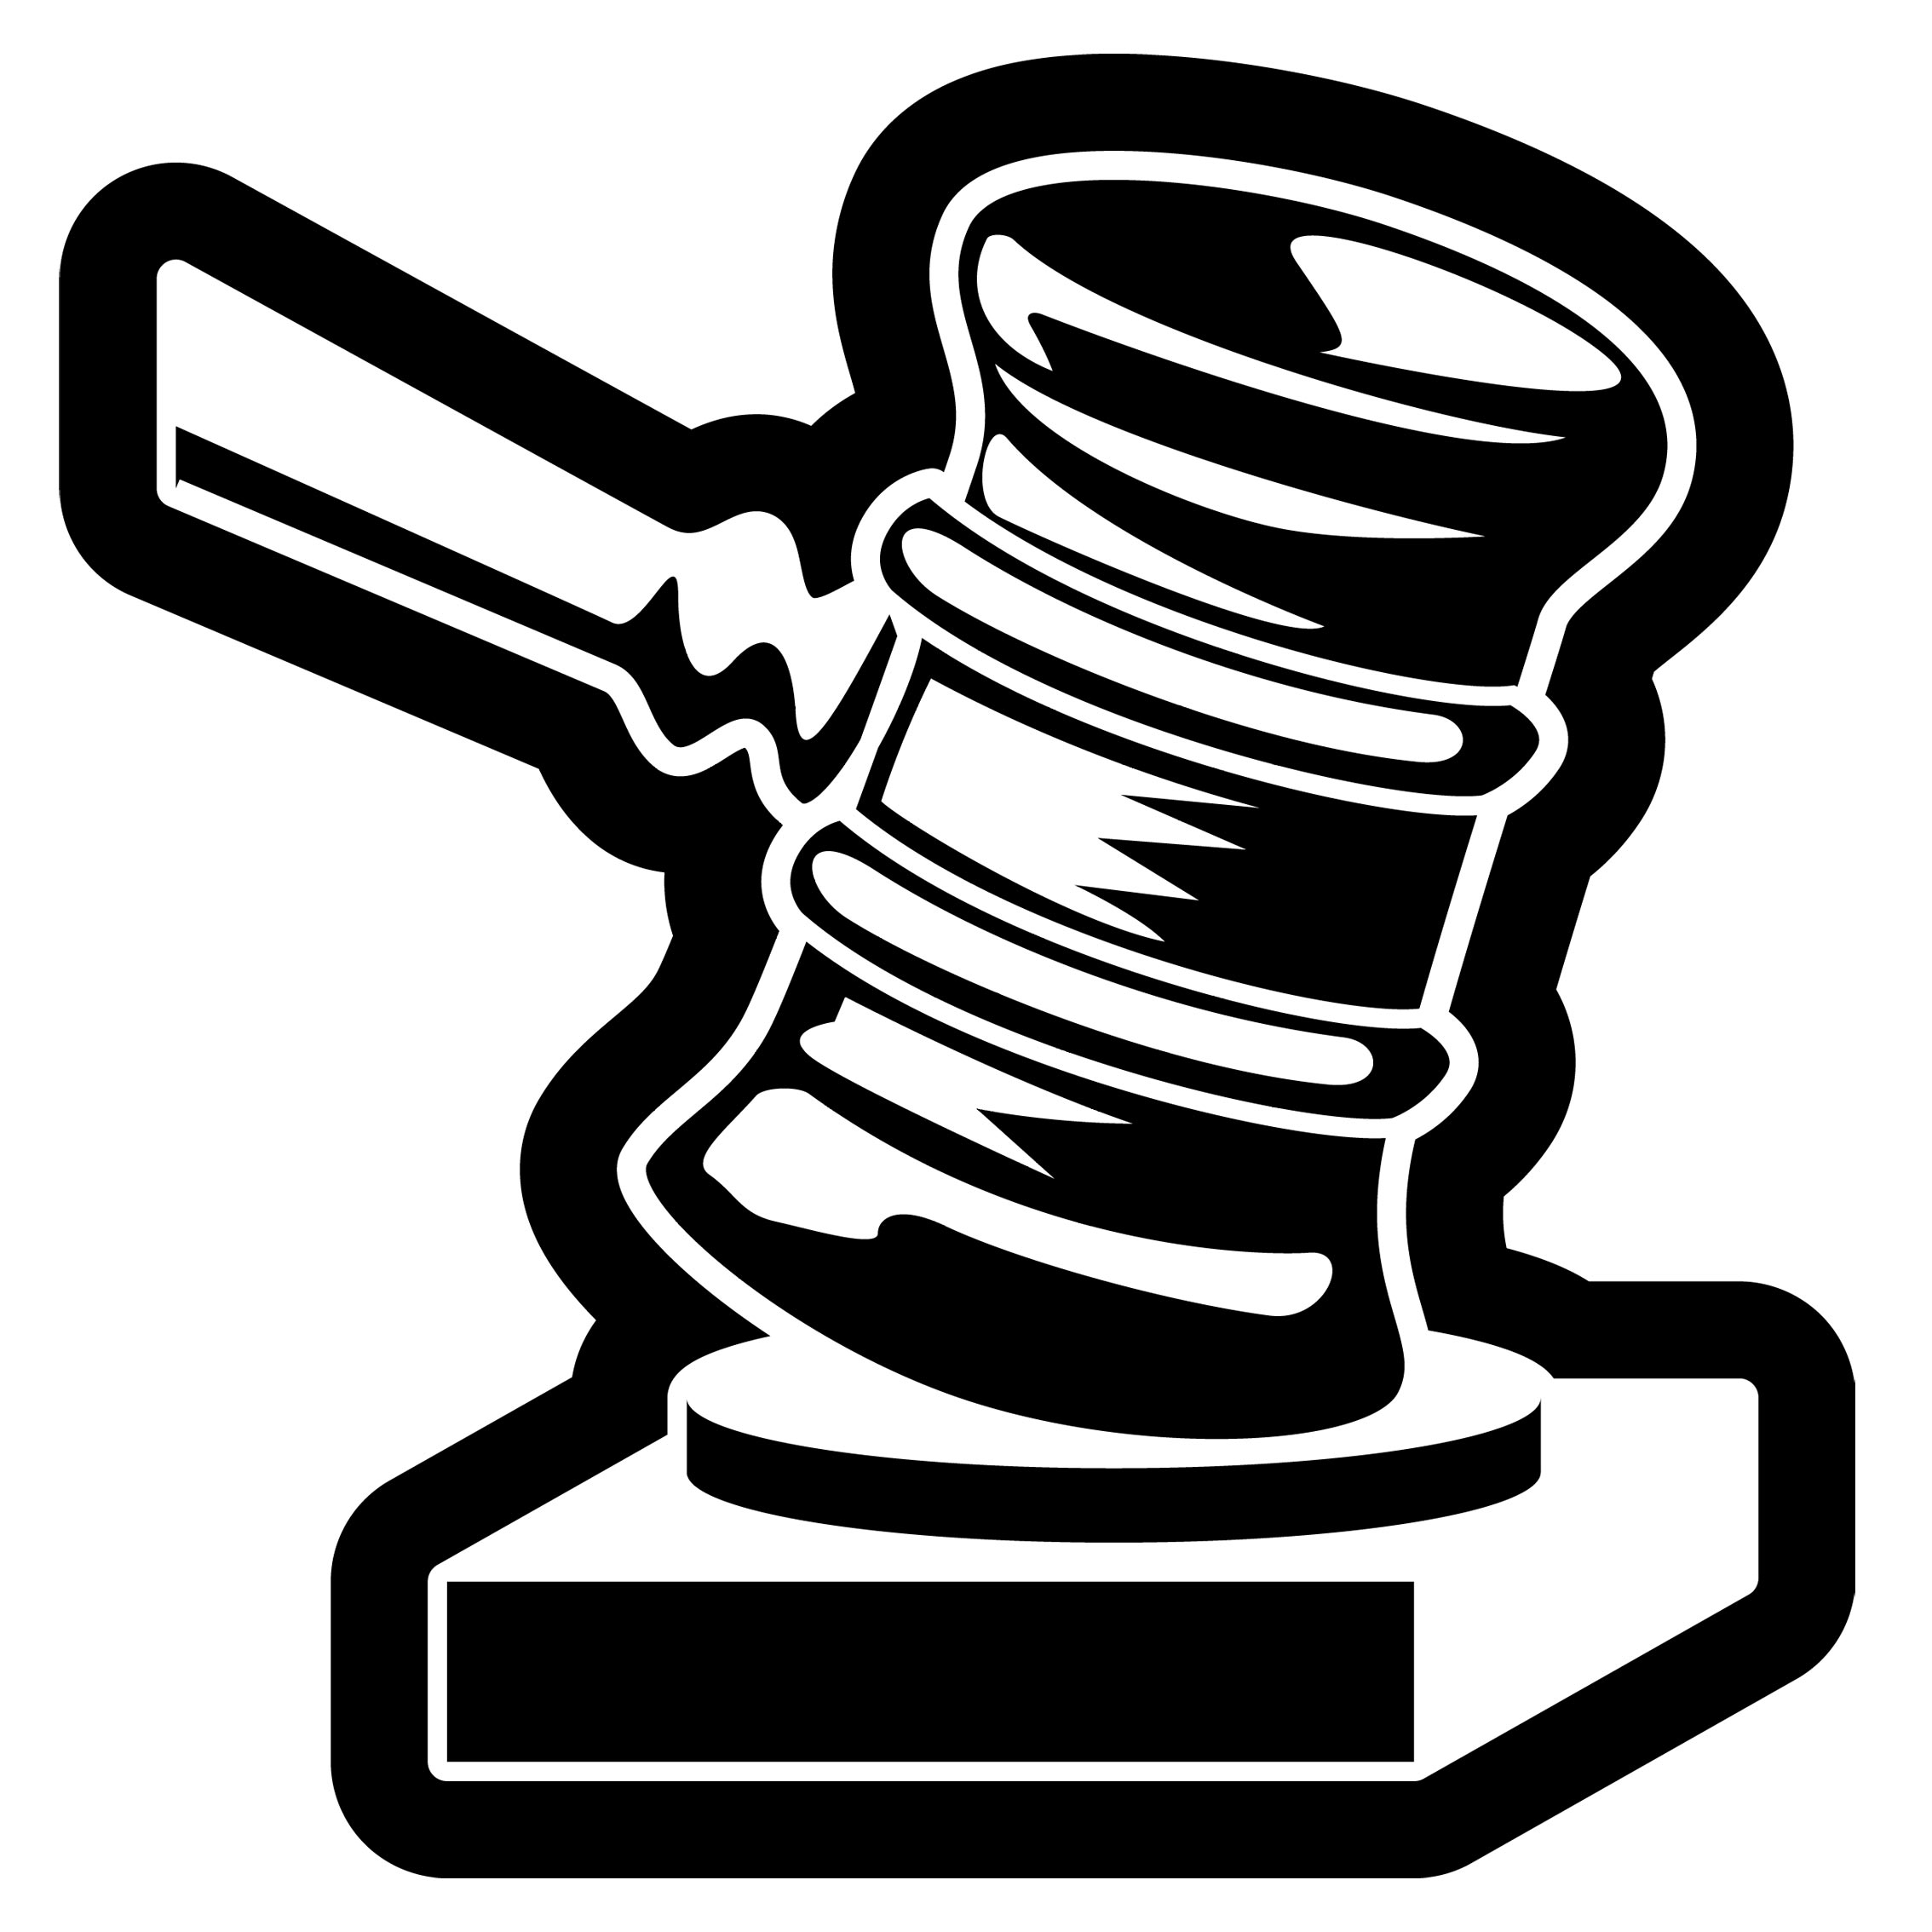 Clipart Justice Hammer   Royalty Free Vector Design